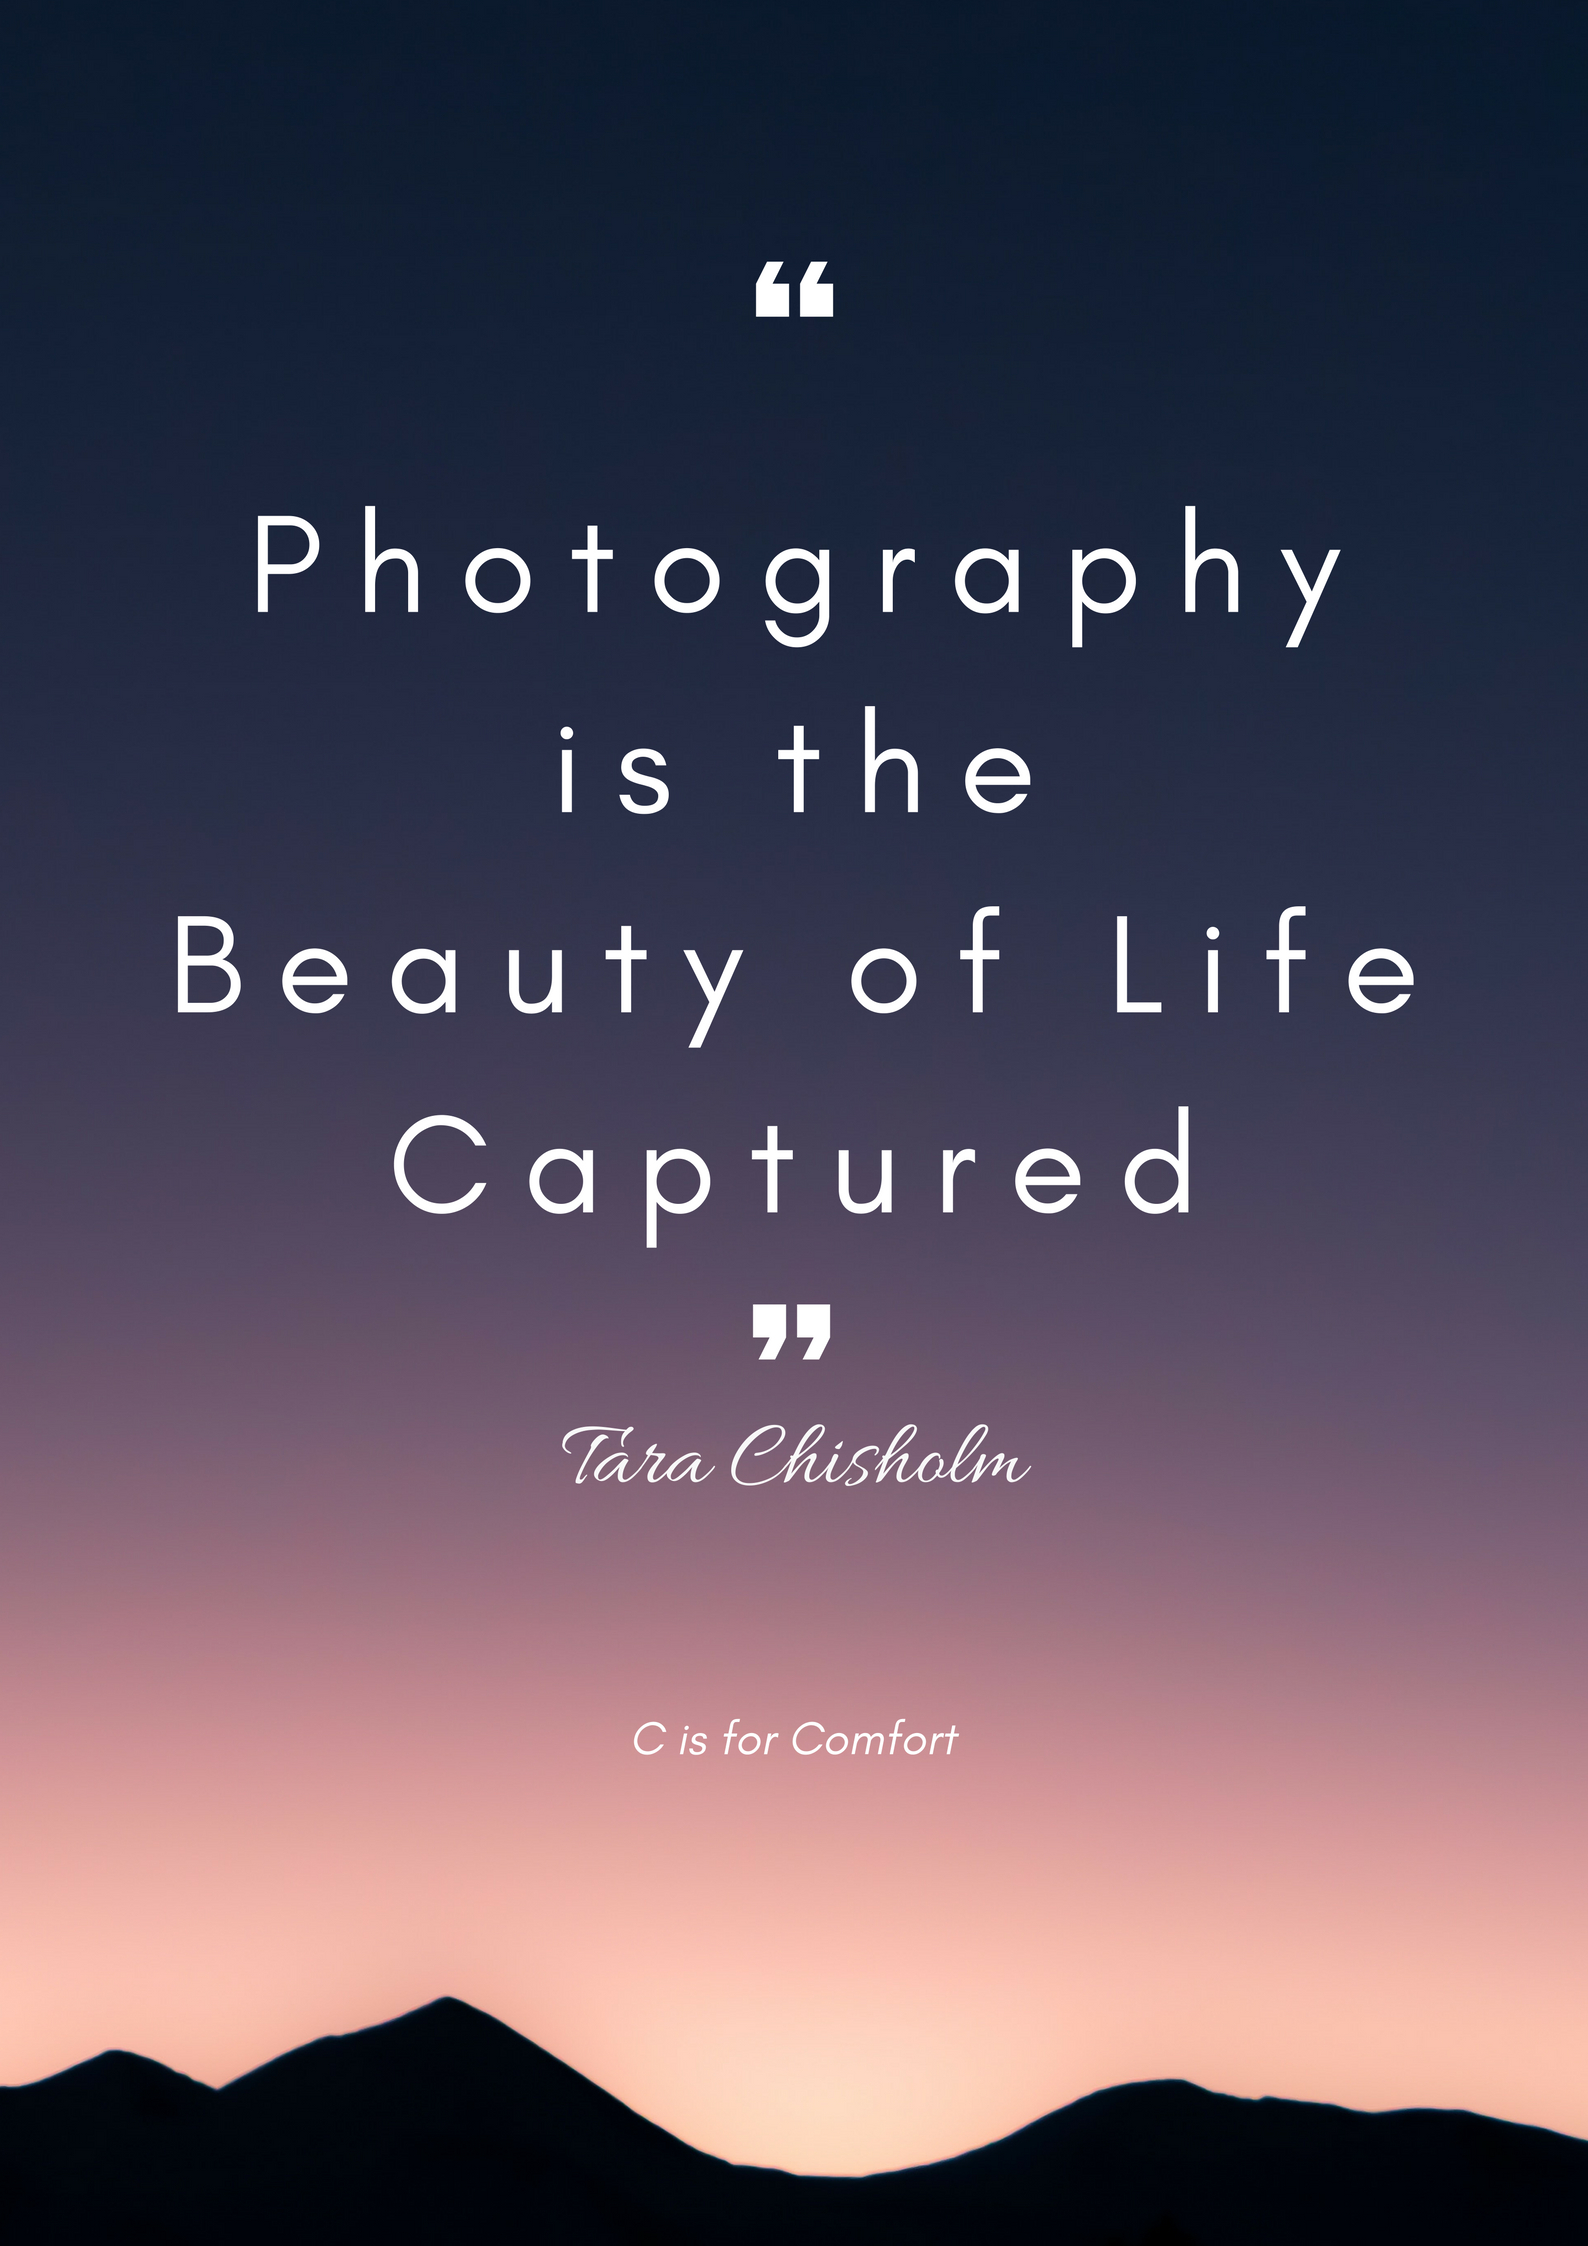 quotes inspirational photographers beauty captured quote chisolm tara